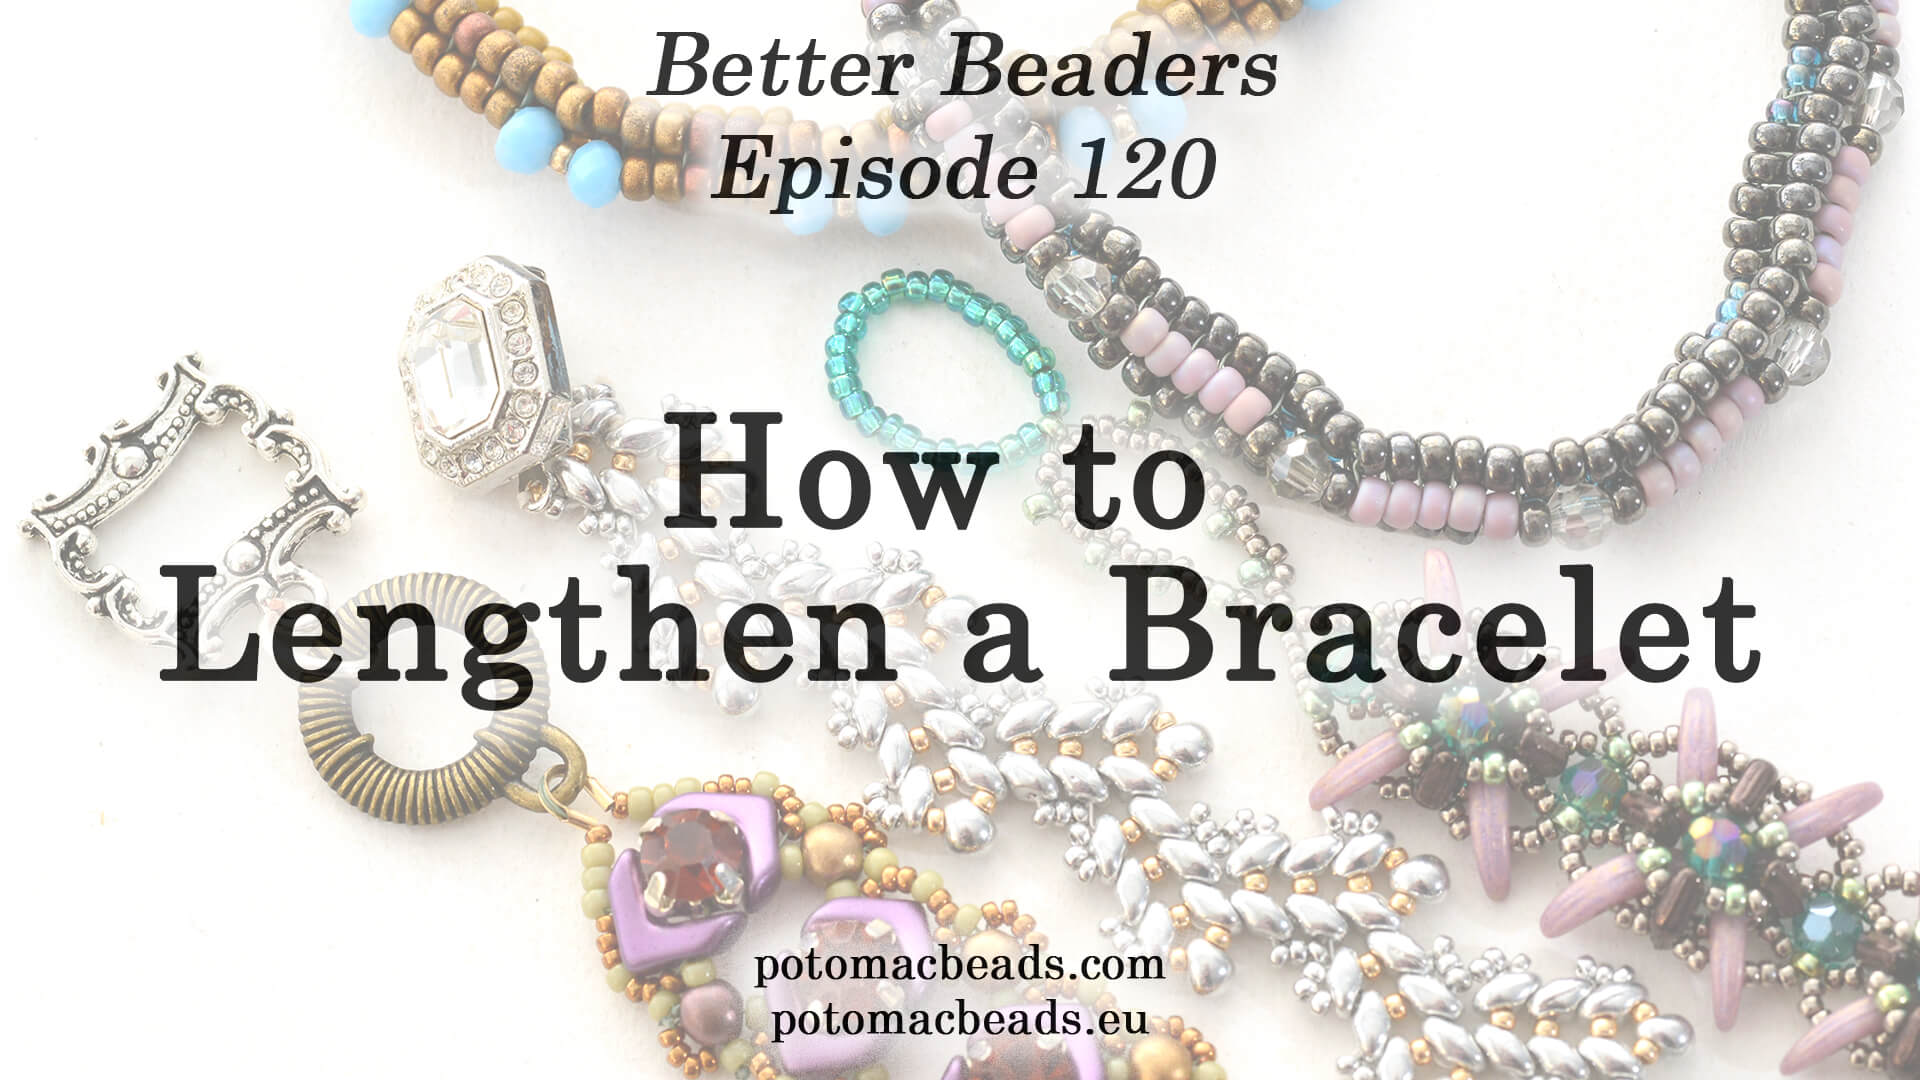 How to Bead / Better Beader Episodes / Better Beader Episode 121 - How to Lengthen a Bracelet